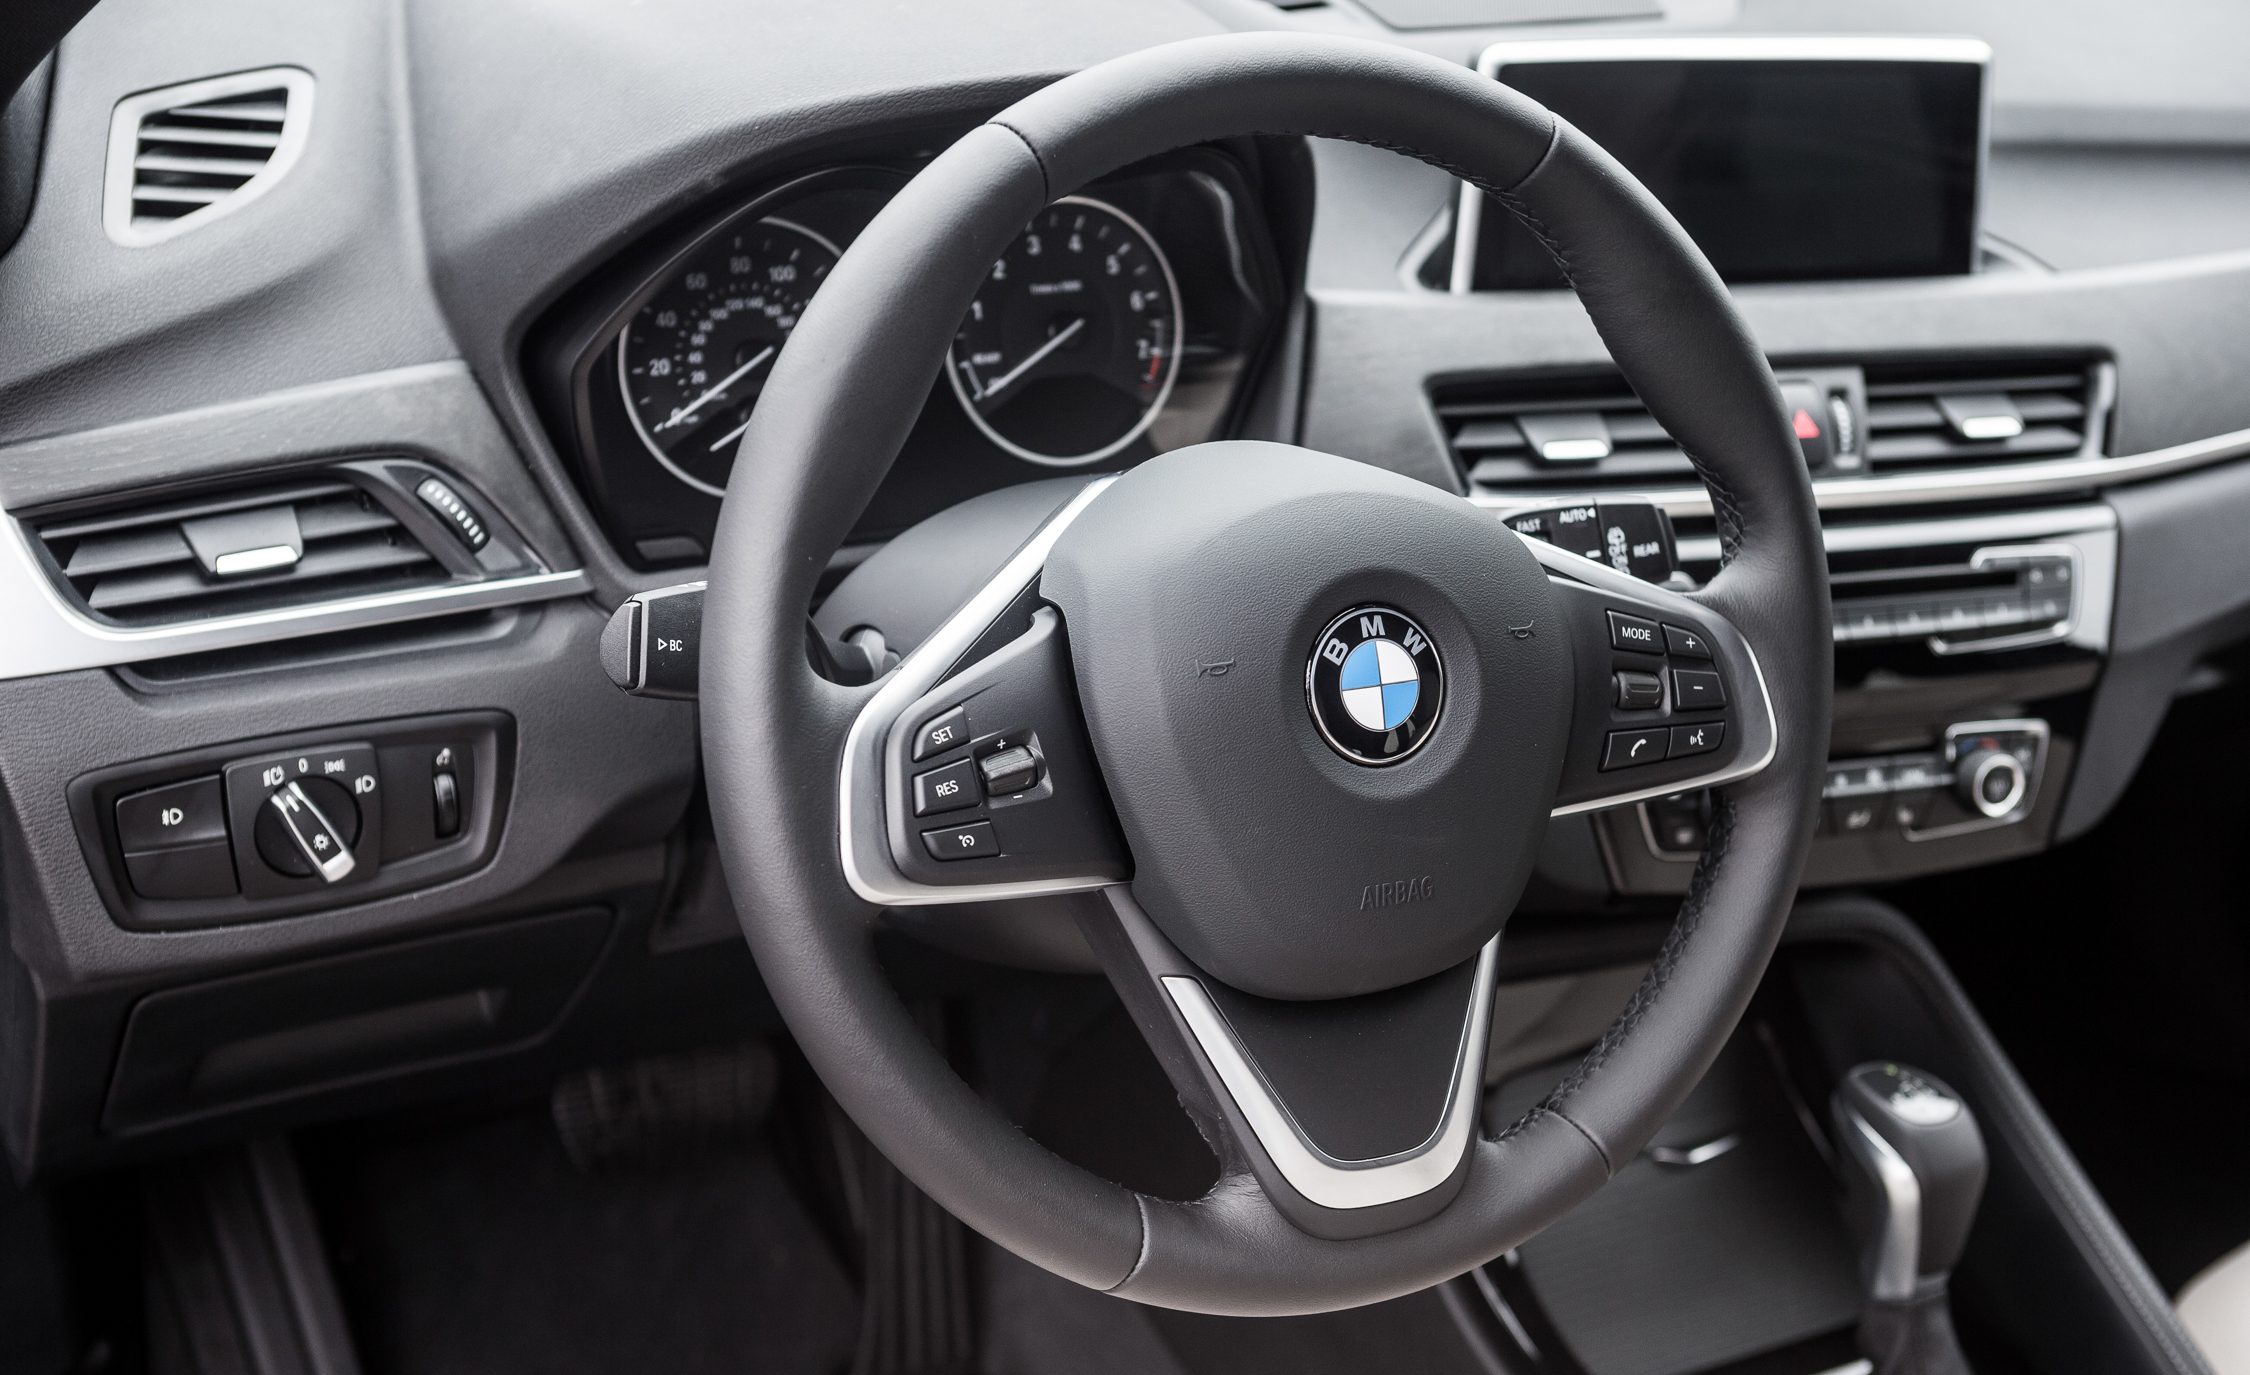 2016 BMW X1 Interior View Steering Wheel (Photo 9 of 36)